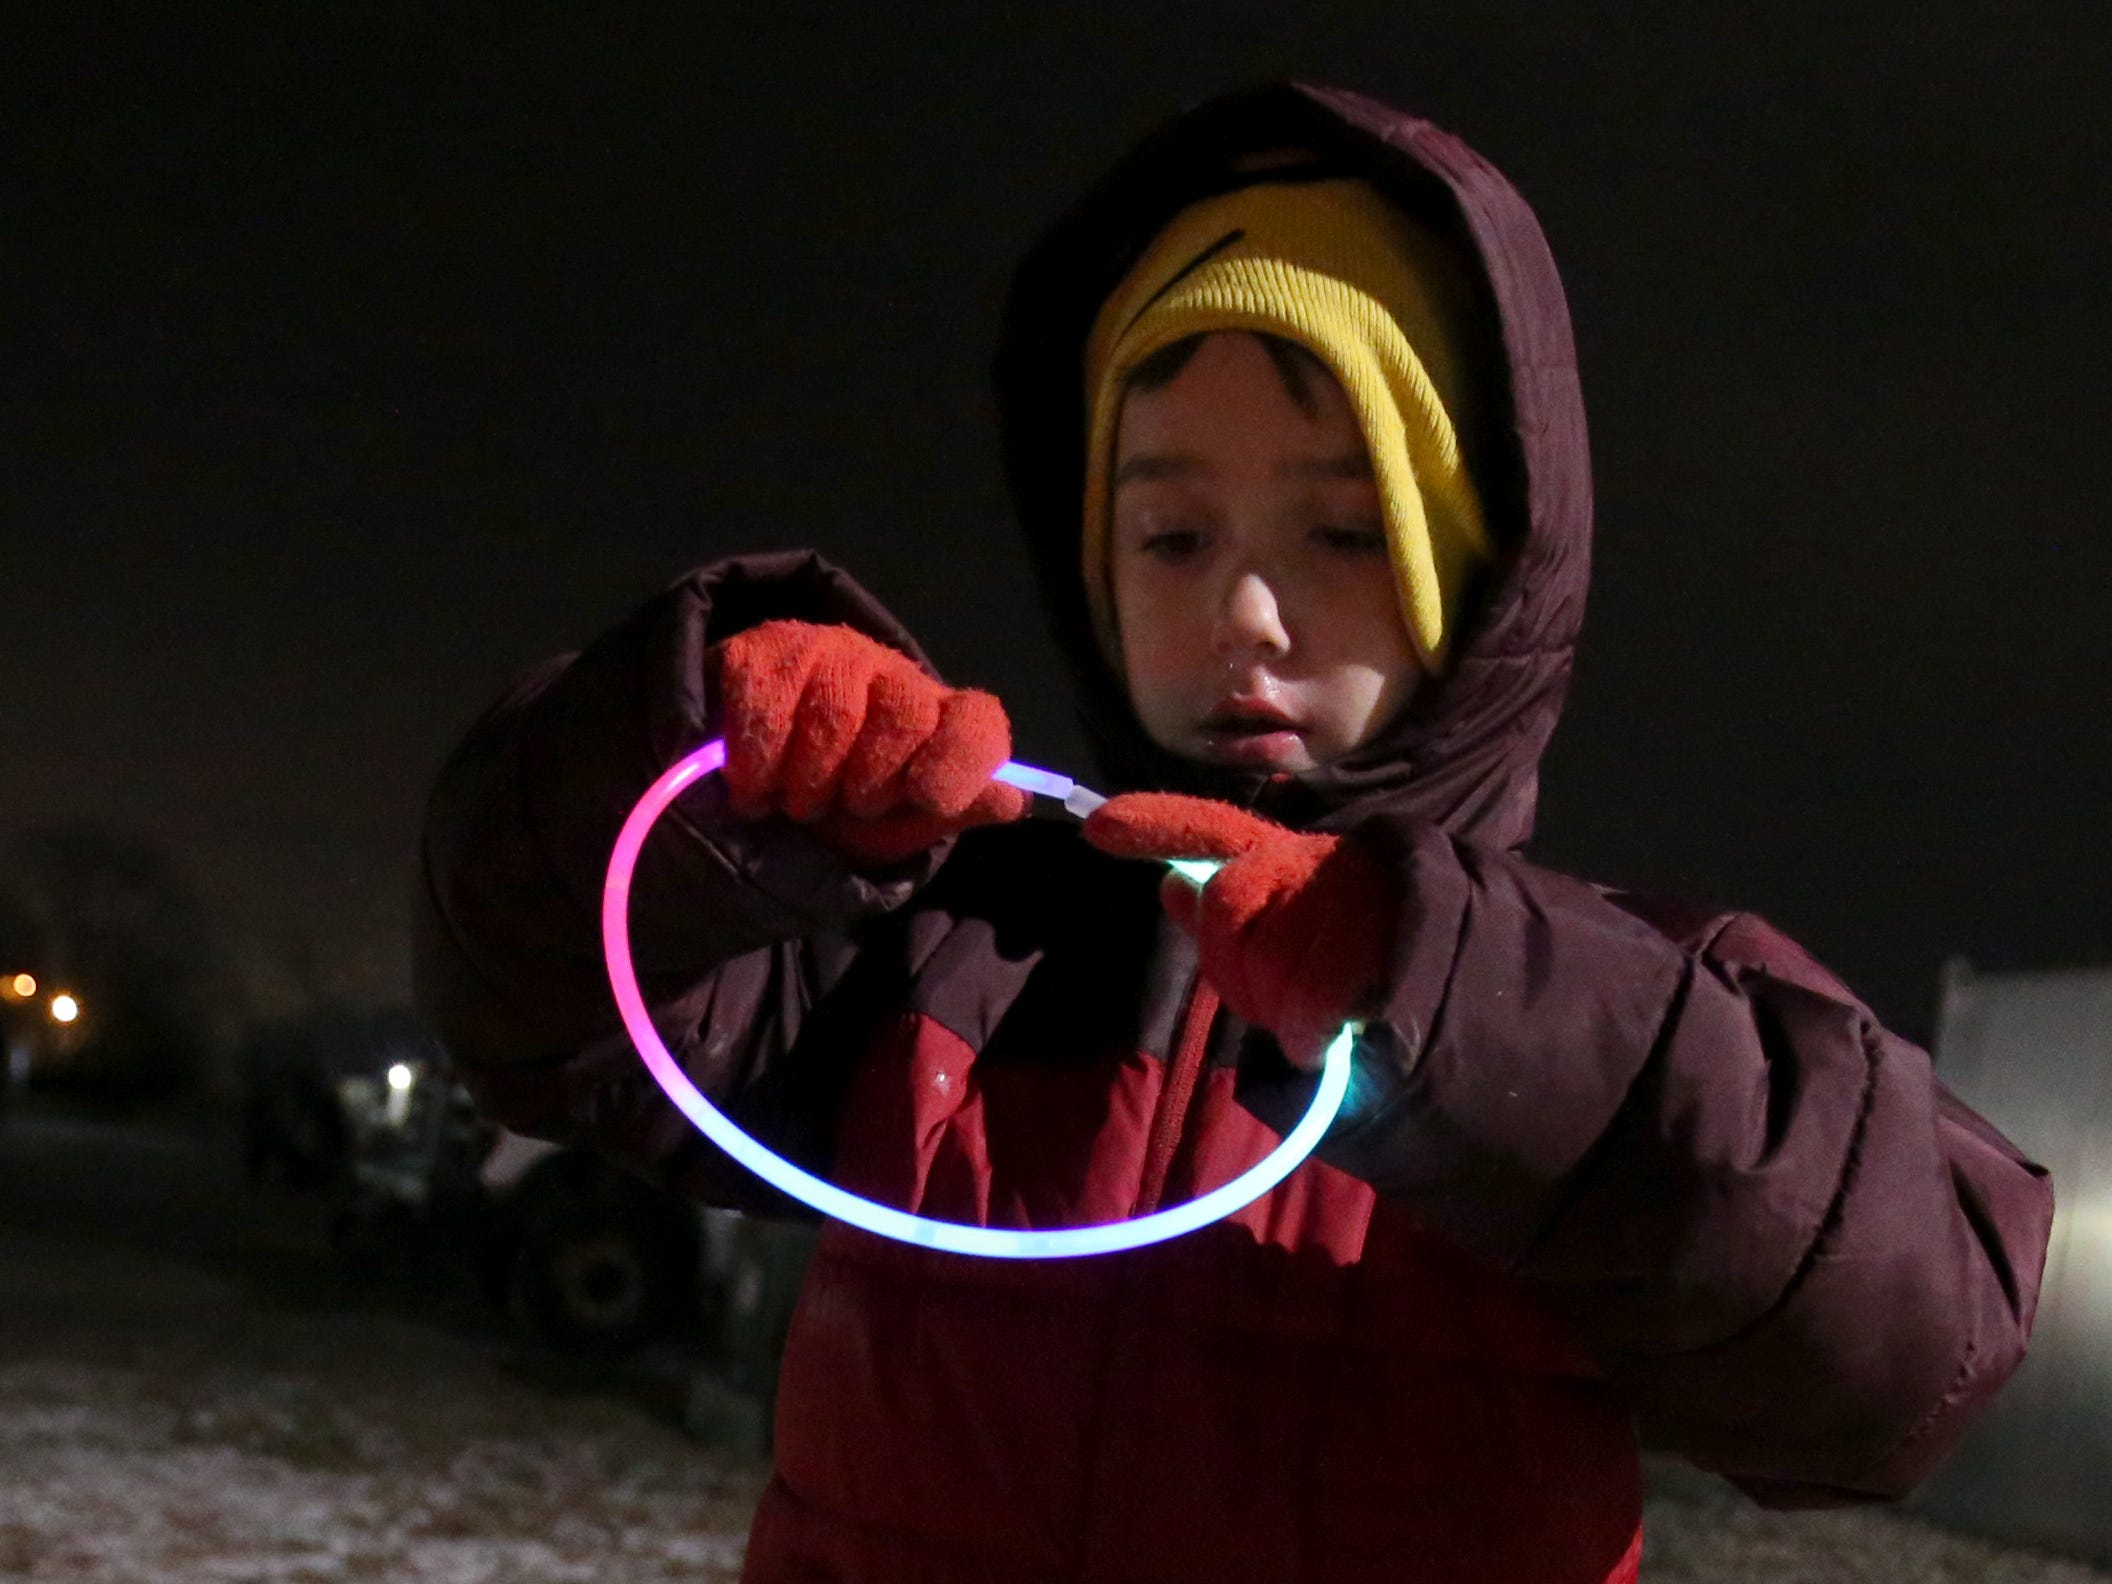 Vaughn Bertelson, 6, connects a glow-in-the-dark necklace while waiting for the Canadian Pacific Holiday Train in Oconomowoc on Dec. 7.